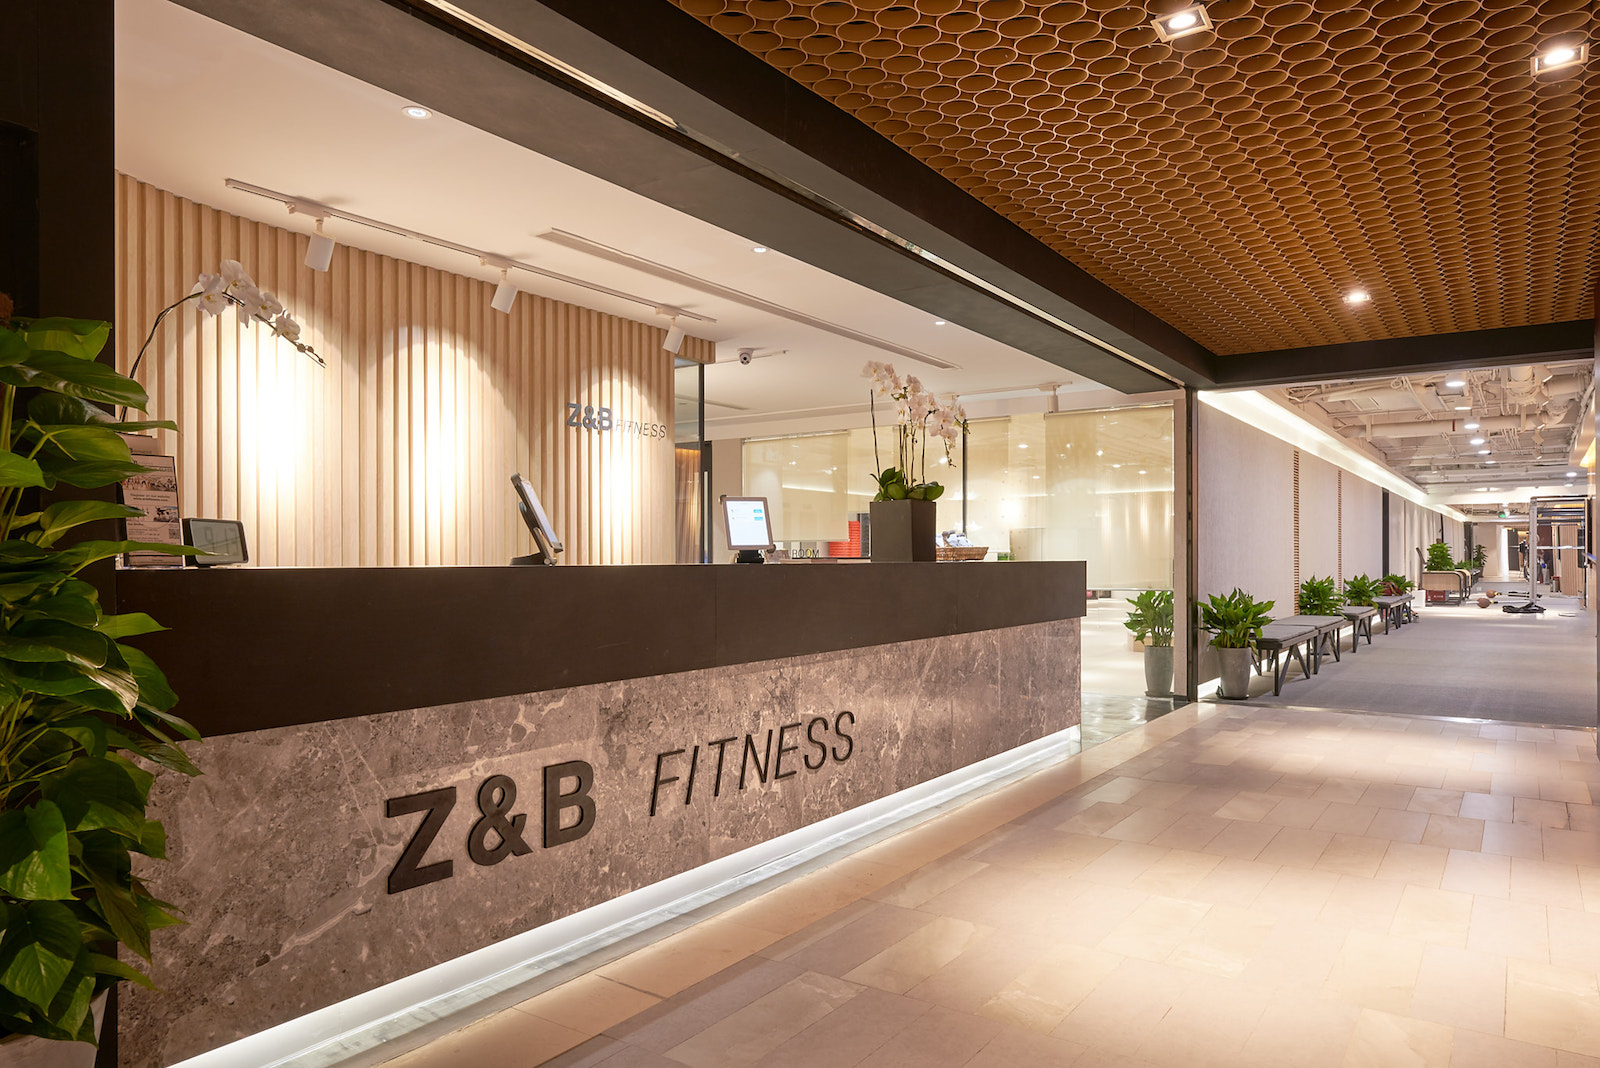 Z&B Fitness (Golden Eagle Square) Shanghai